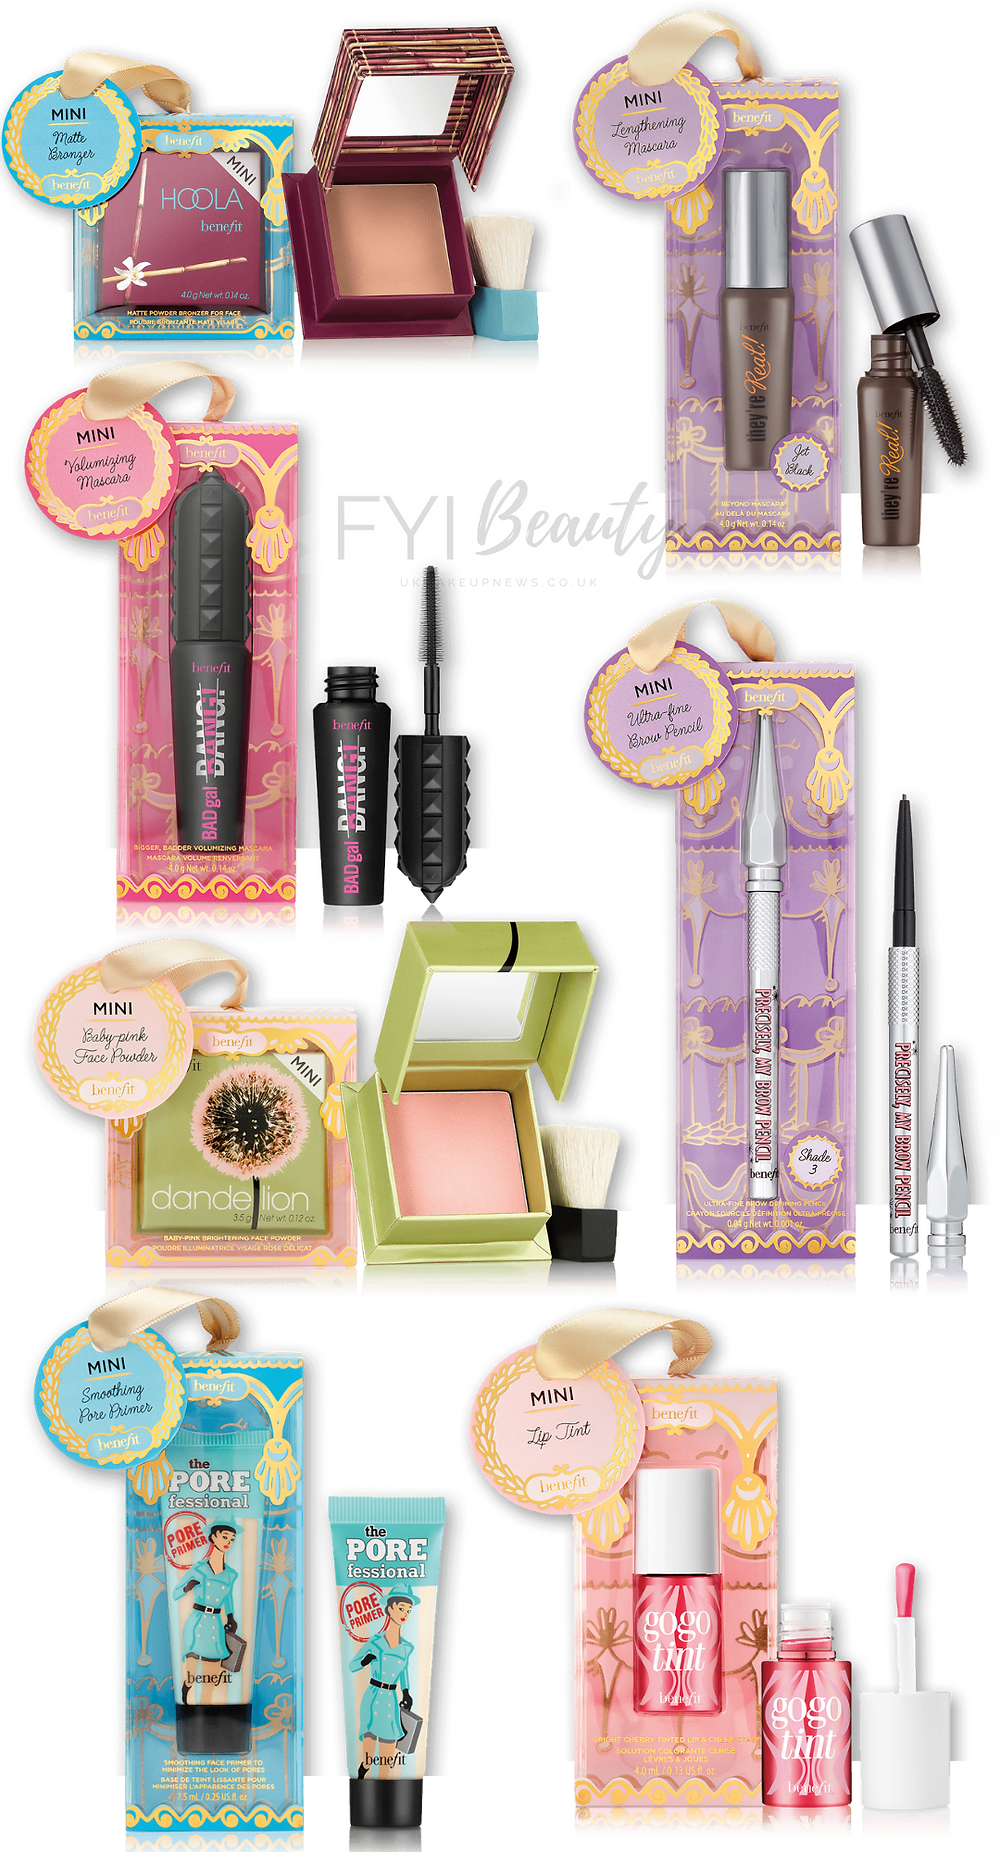 Benefit Cosmetics Mini Stocking Stuffers | UK Makeup News | FYI Beauty